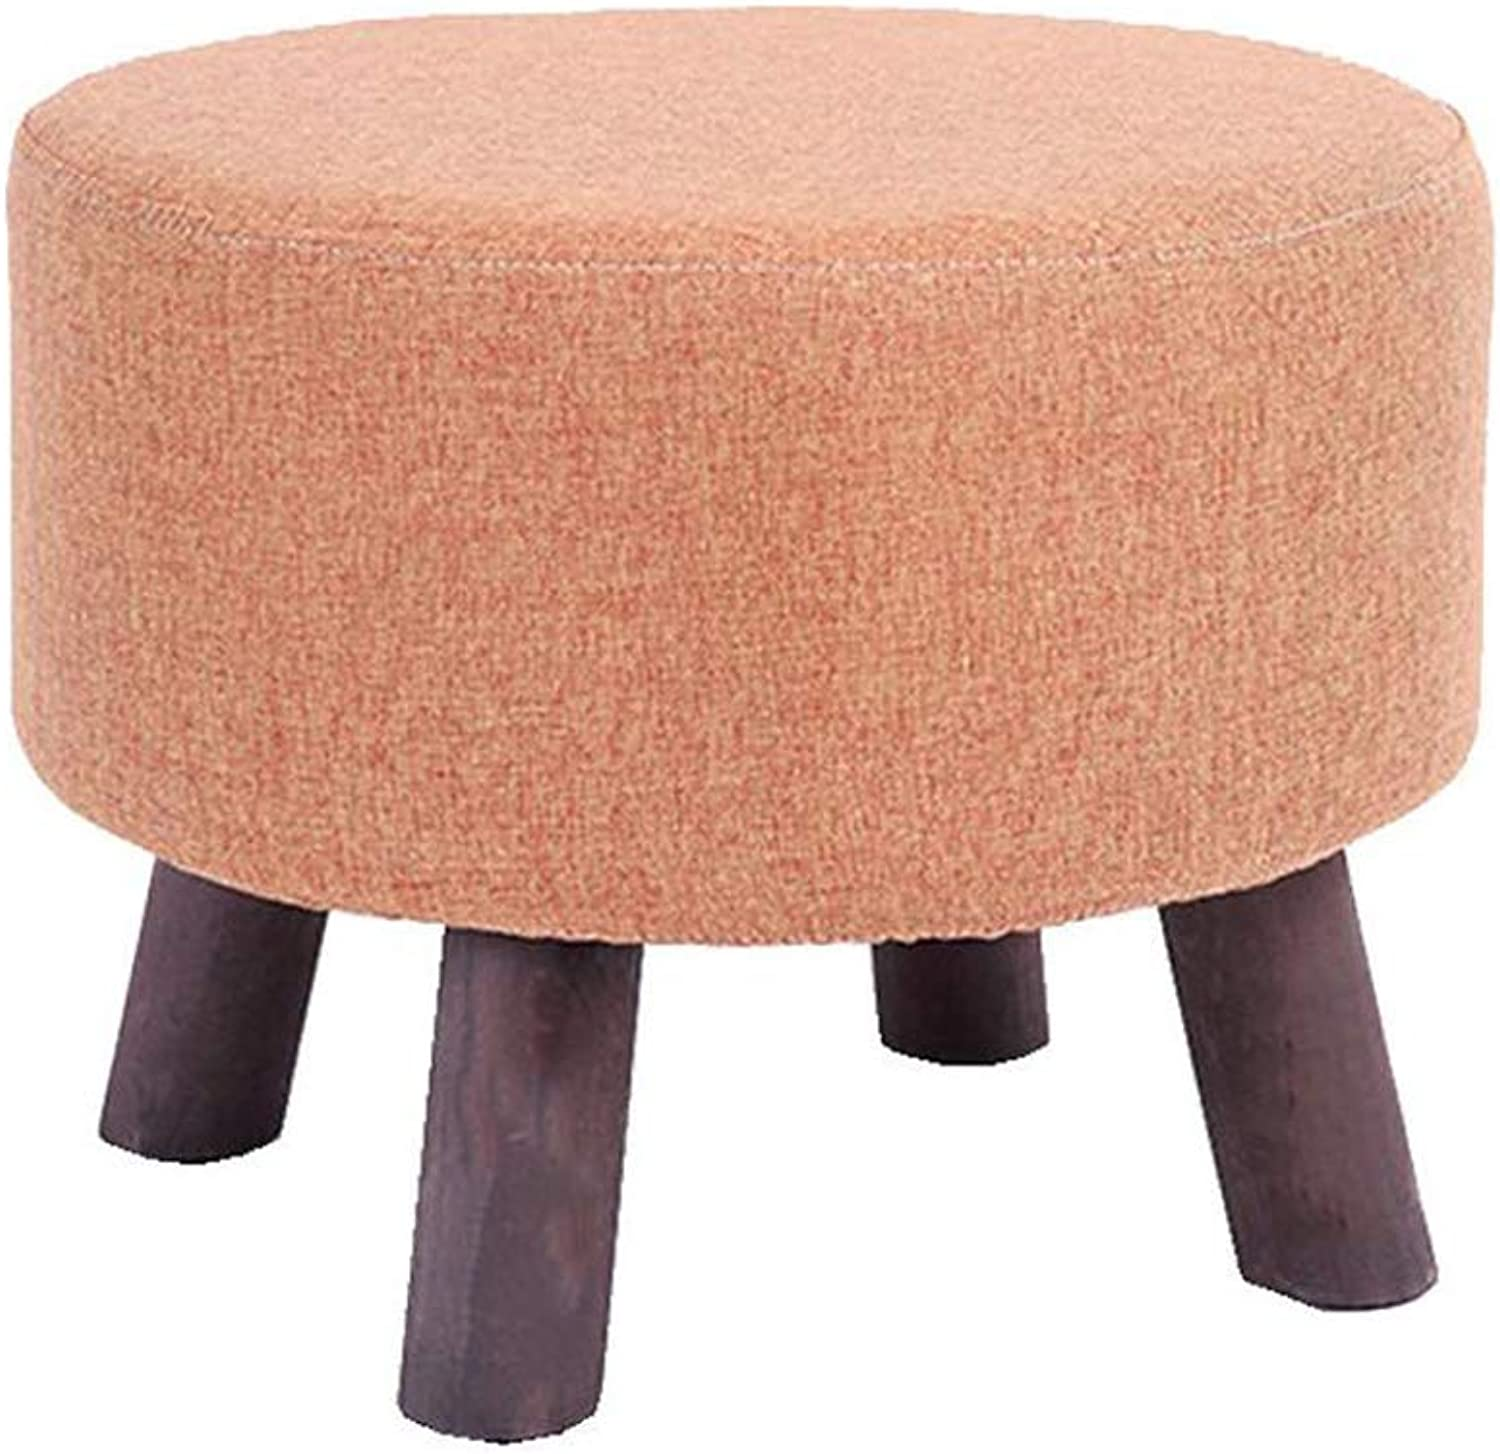 Small Stool Simple and Creative Wooden Sofa Bench shoes Stool Soft Linen Fabric Seat 4 colors Optional (color   orange)